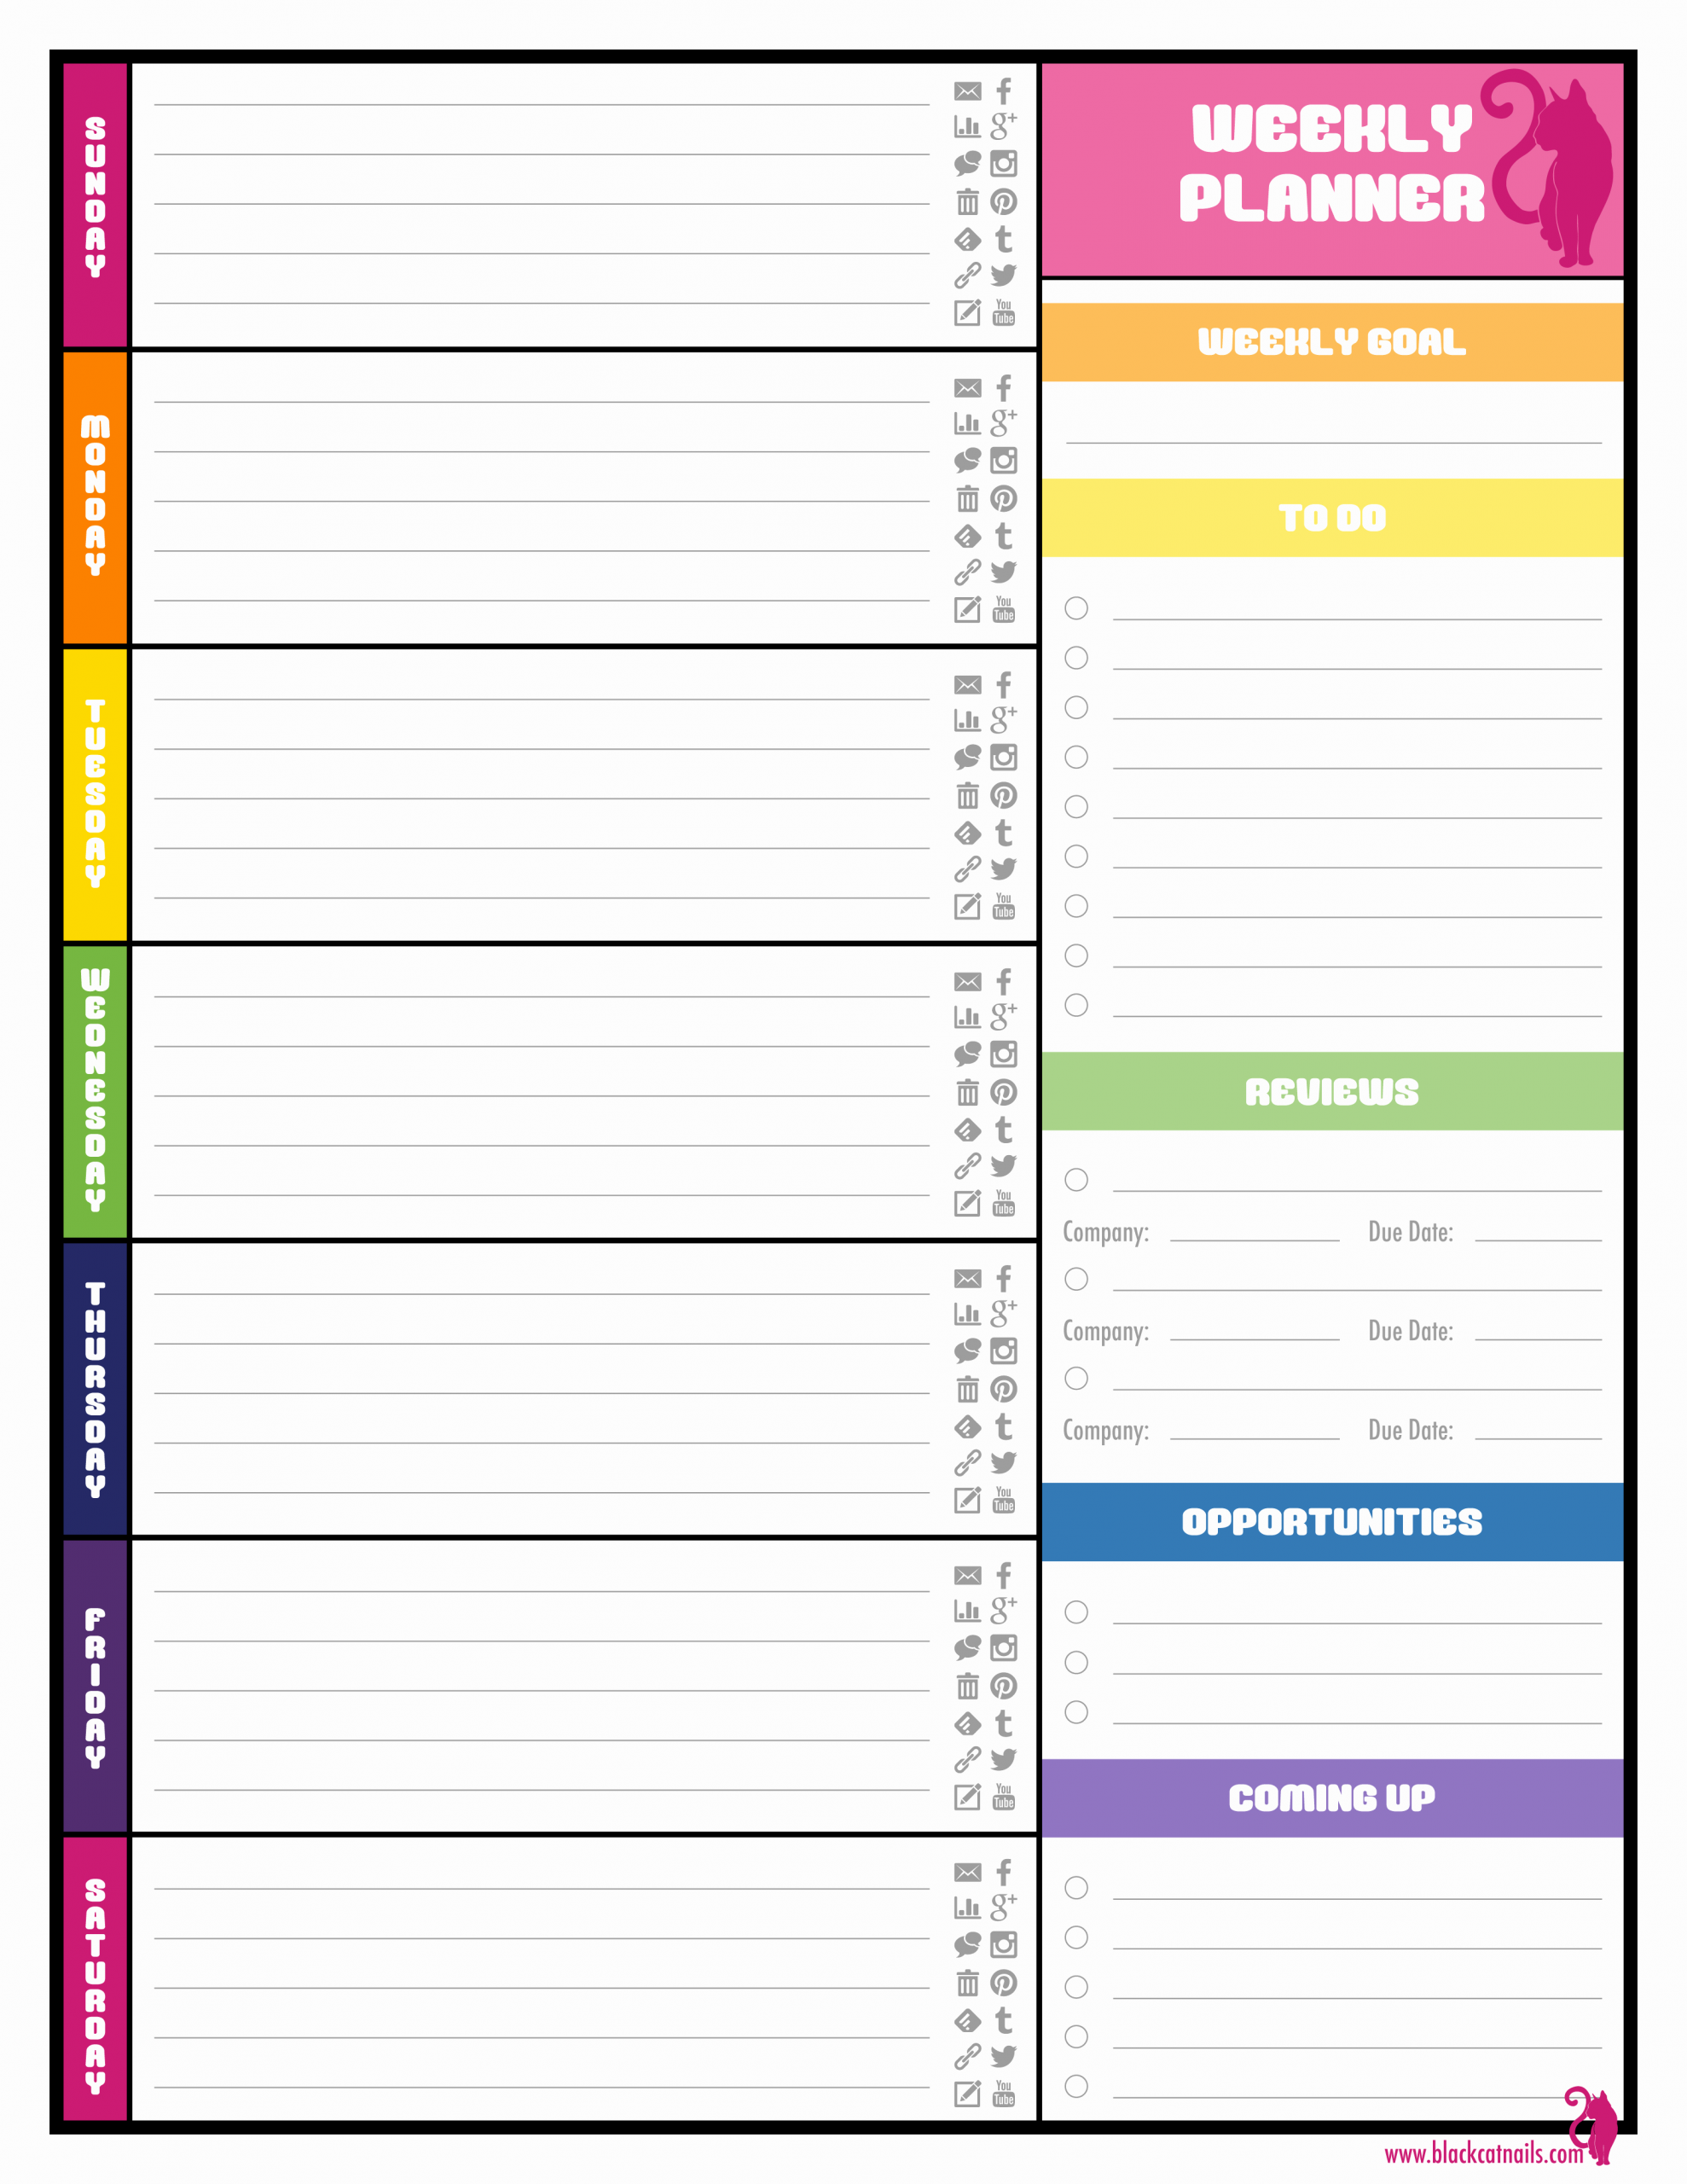 Daily Planner Printable Template Elegant Colorful Weekly Blogging Planner Image